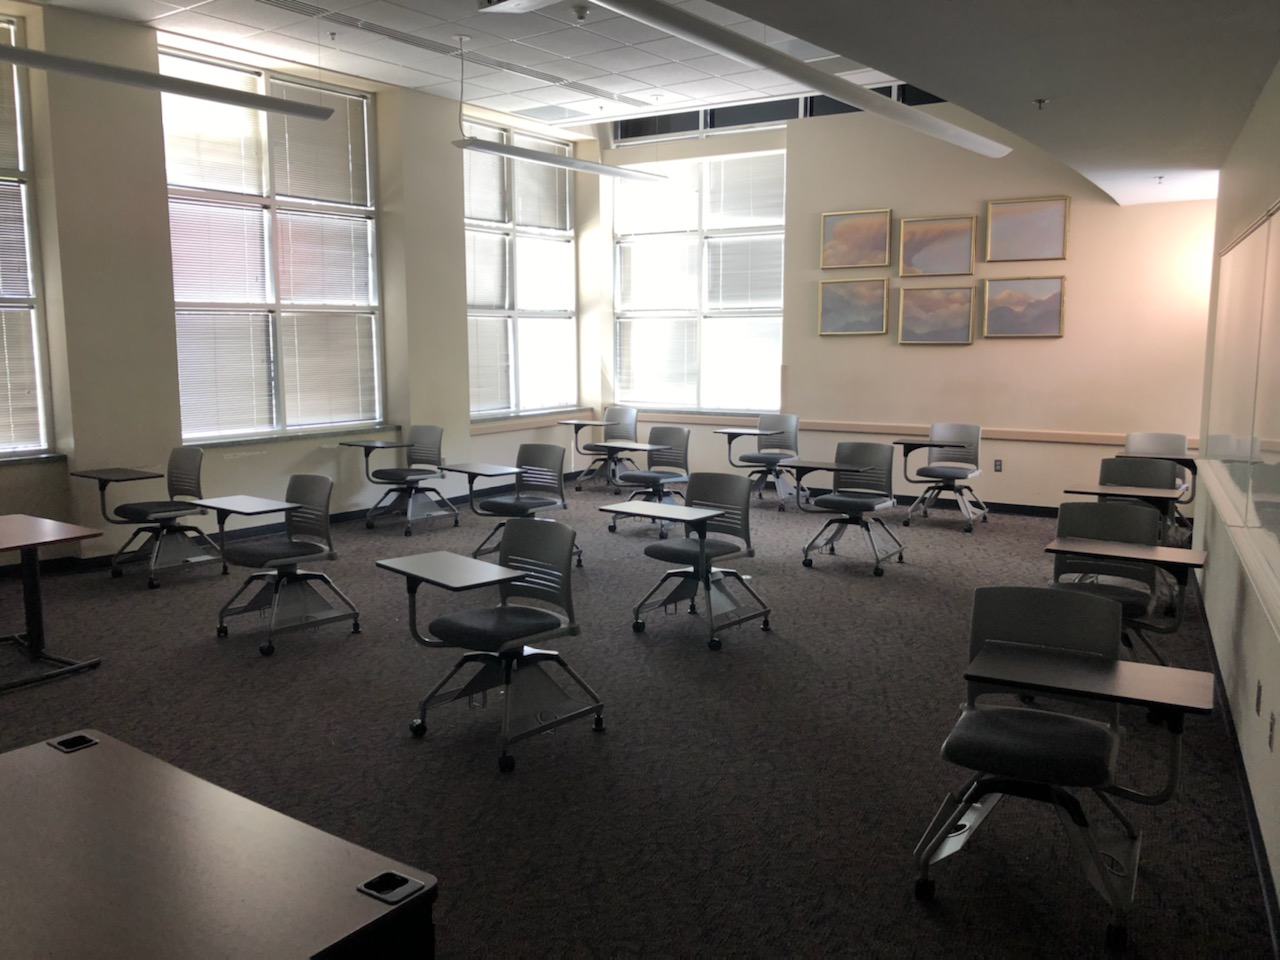 Image of a class room post covid-19 pandemic